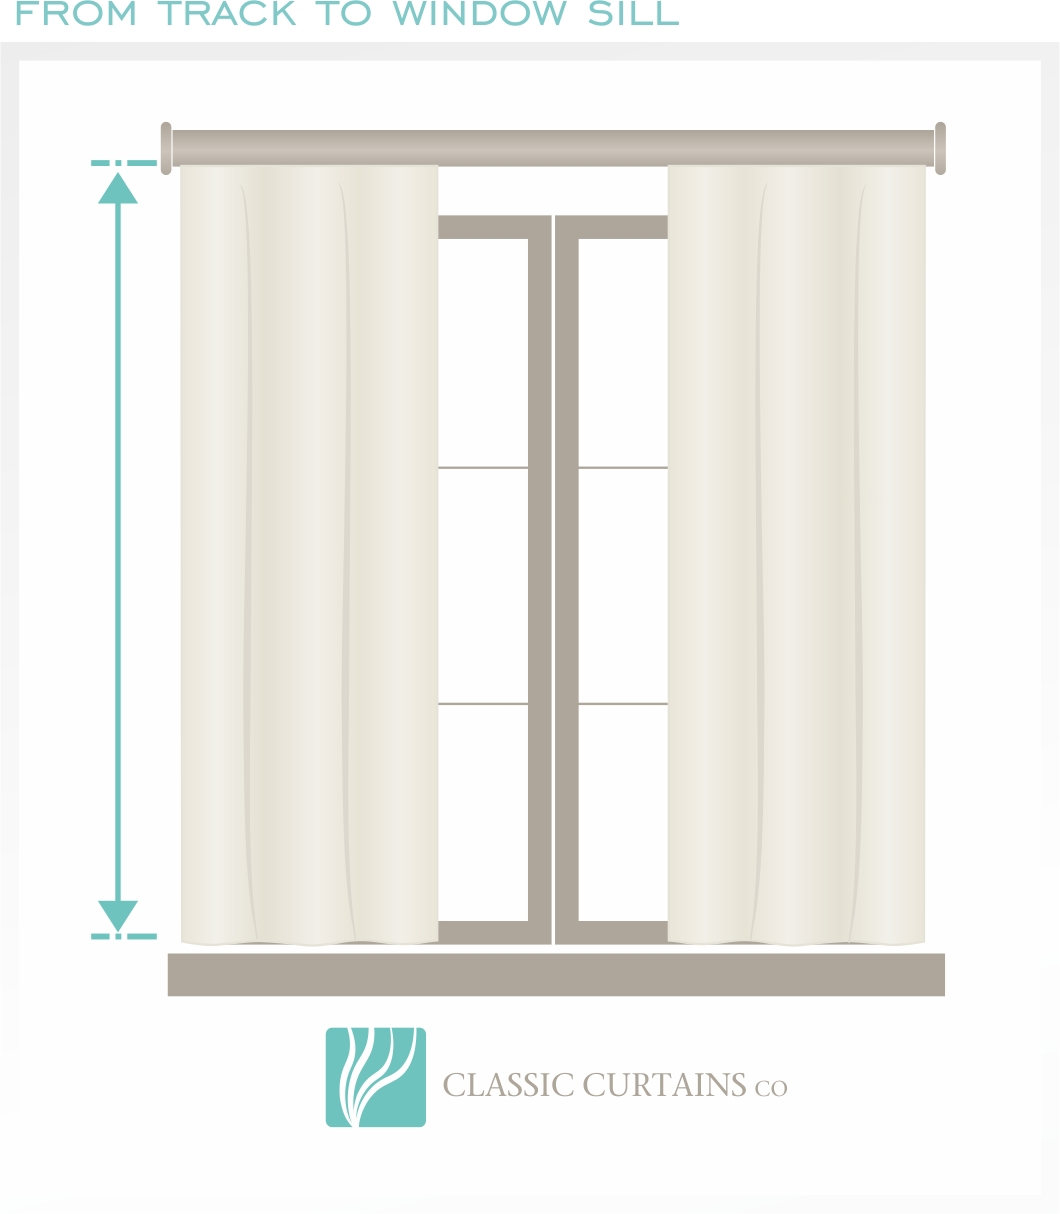 An example of Window Sill length, If you would like the curtain to hang to the window sill.